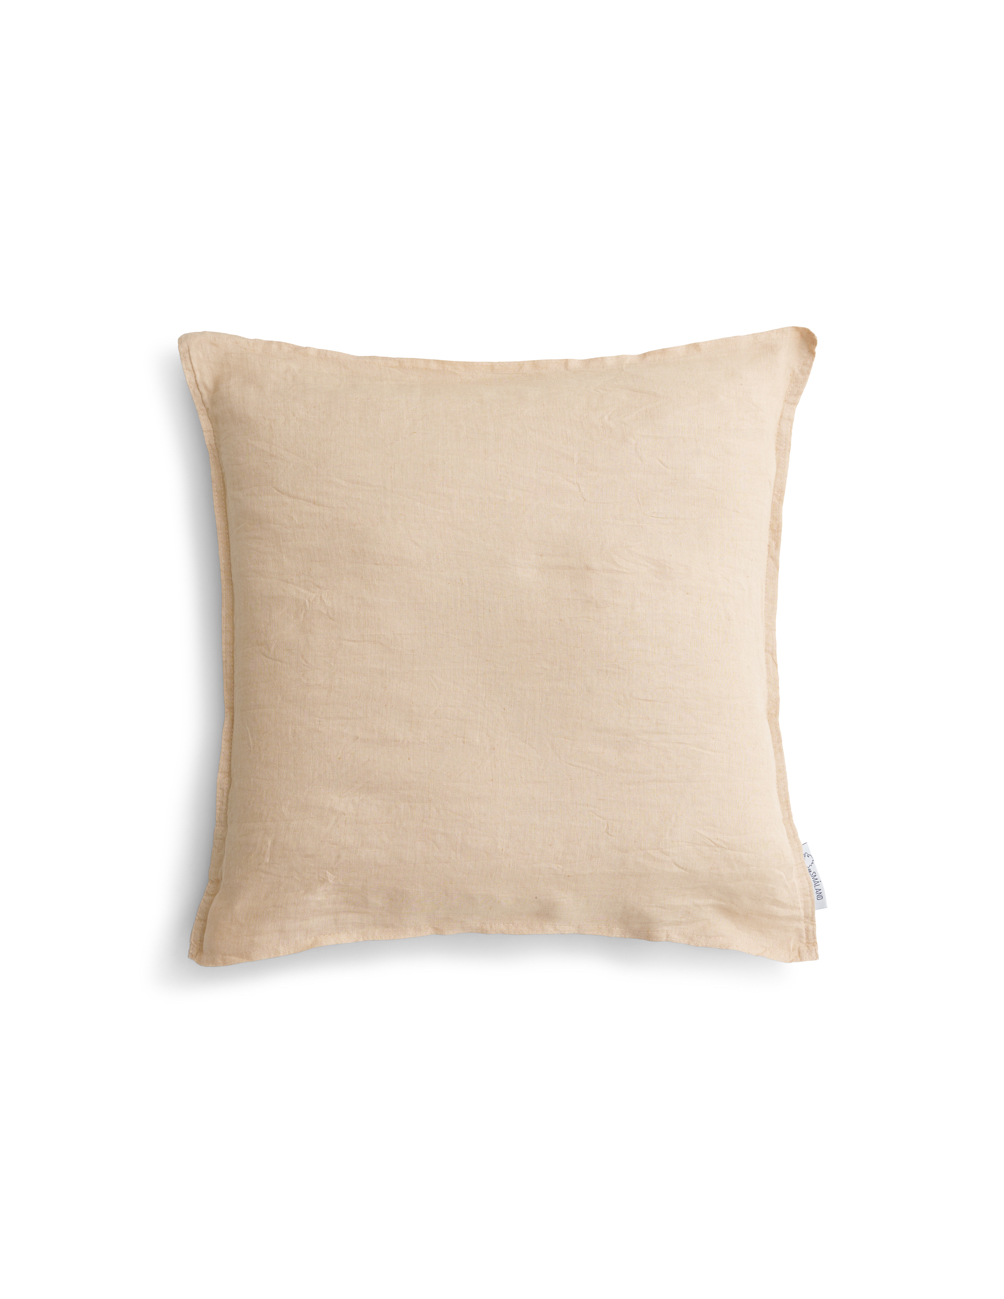 Pillowcase Linen Peach Pink